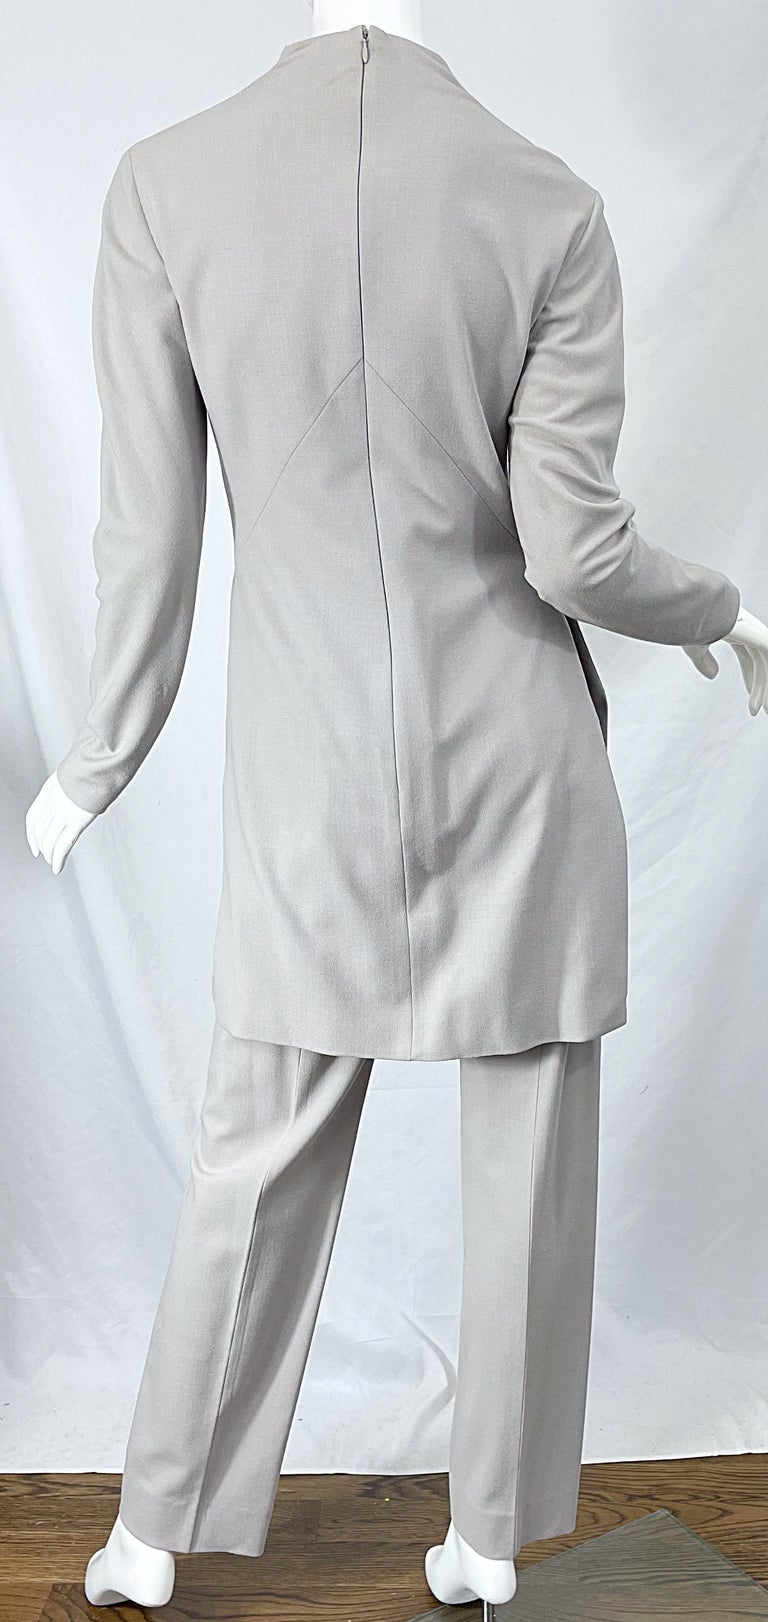 Givenchy Couture Alexander McQueen F/W 2003 Grey Runway Tunic + Slim Pants For Sale 2